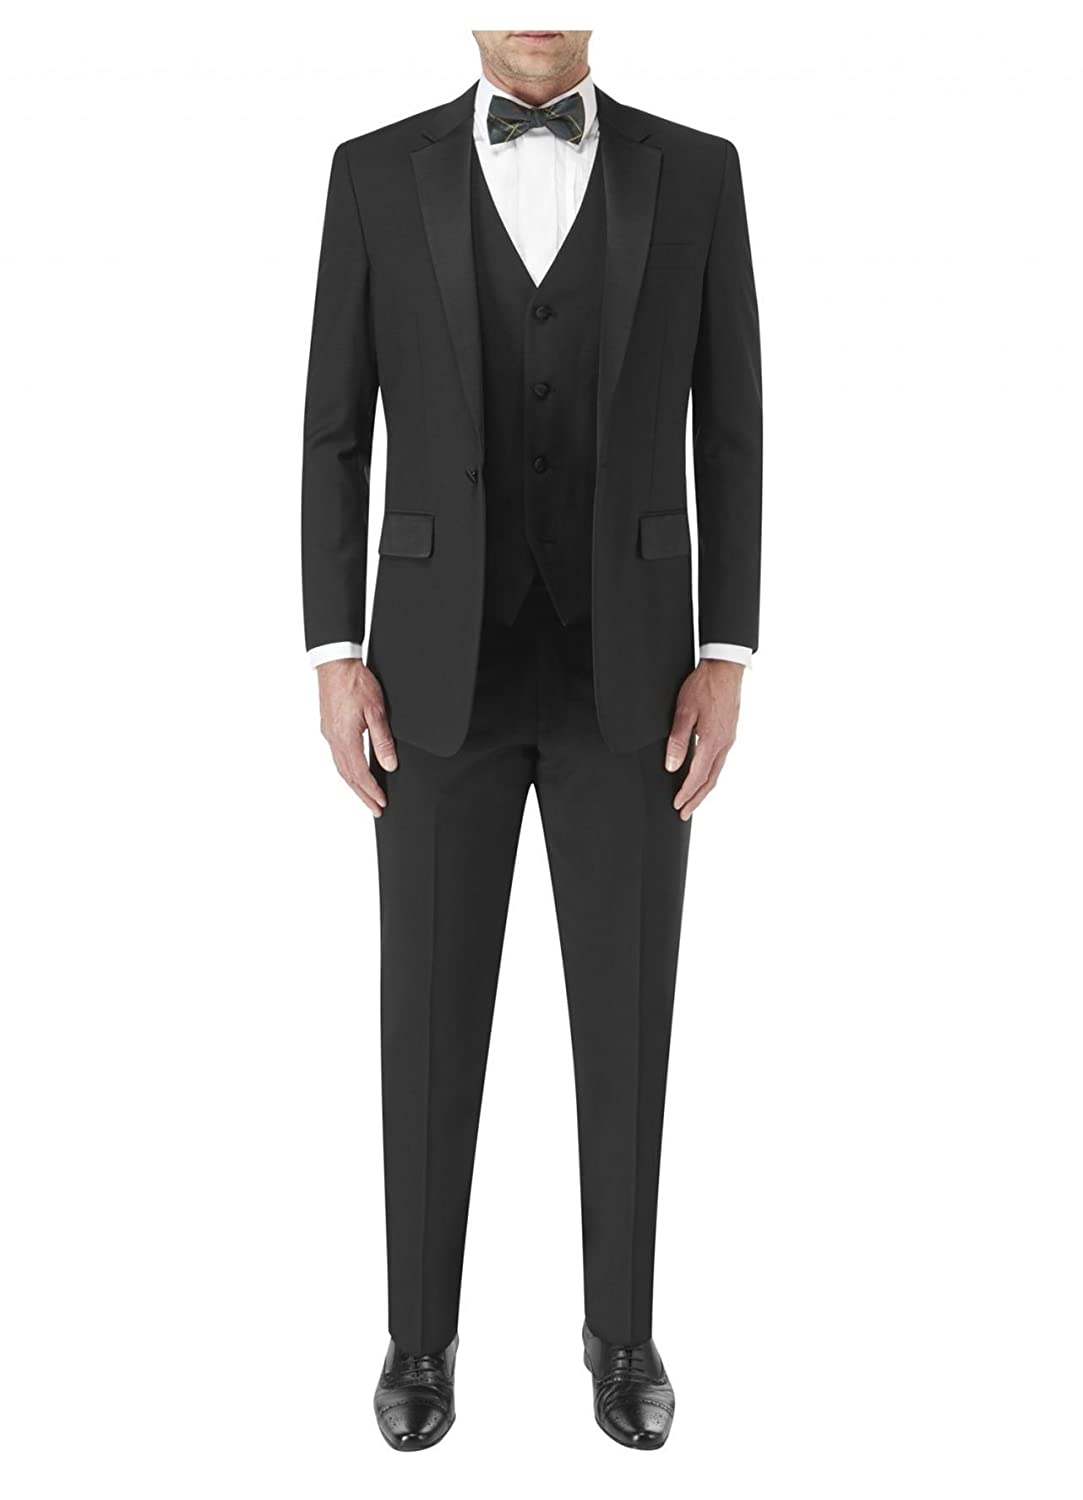 Skopes Latimer 2 Piece Dinner Suit In Black In Size 38 To 60 inches/S/R/L